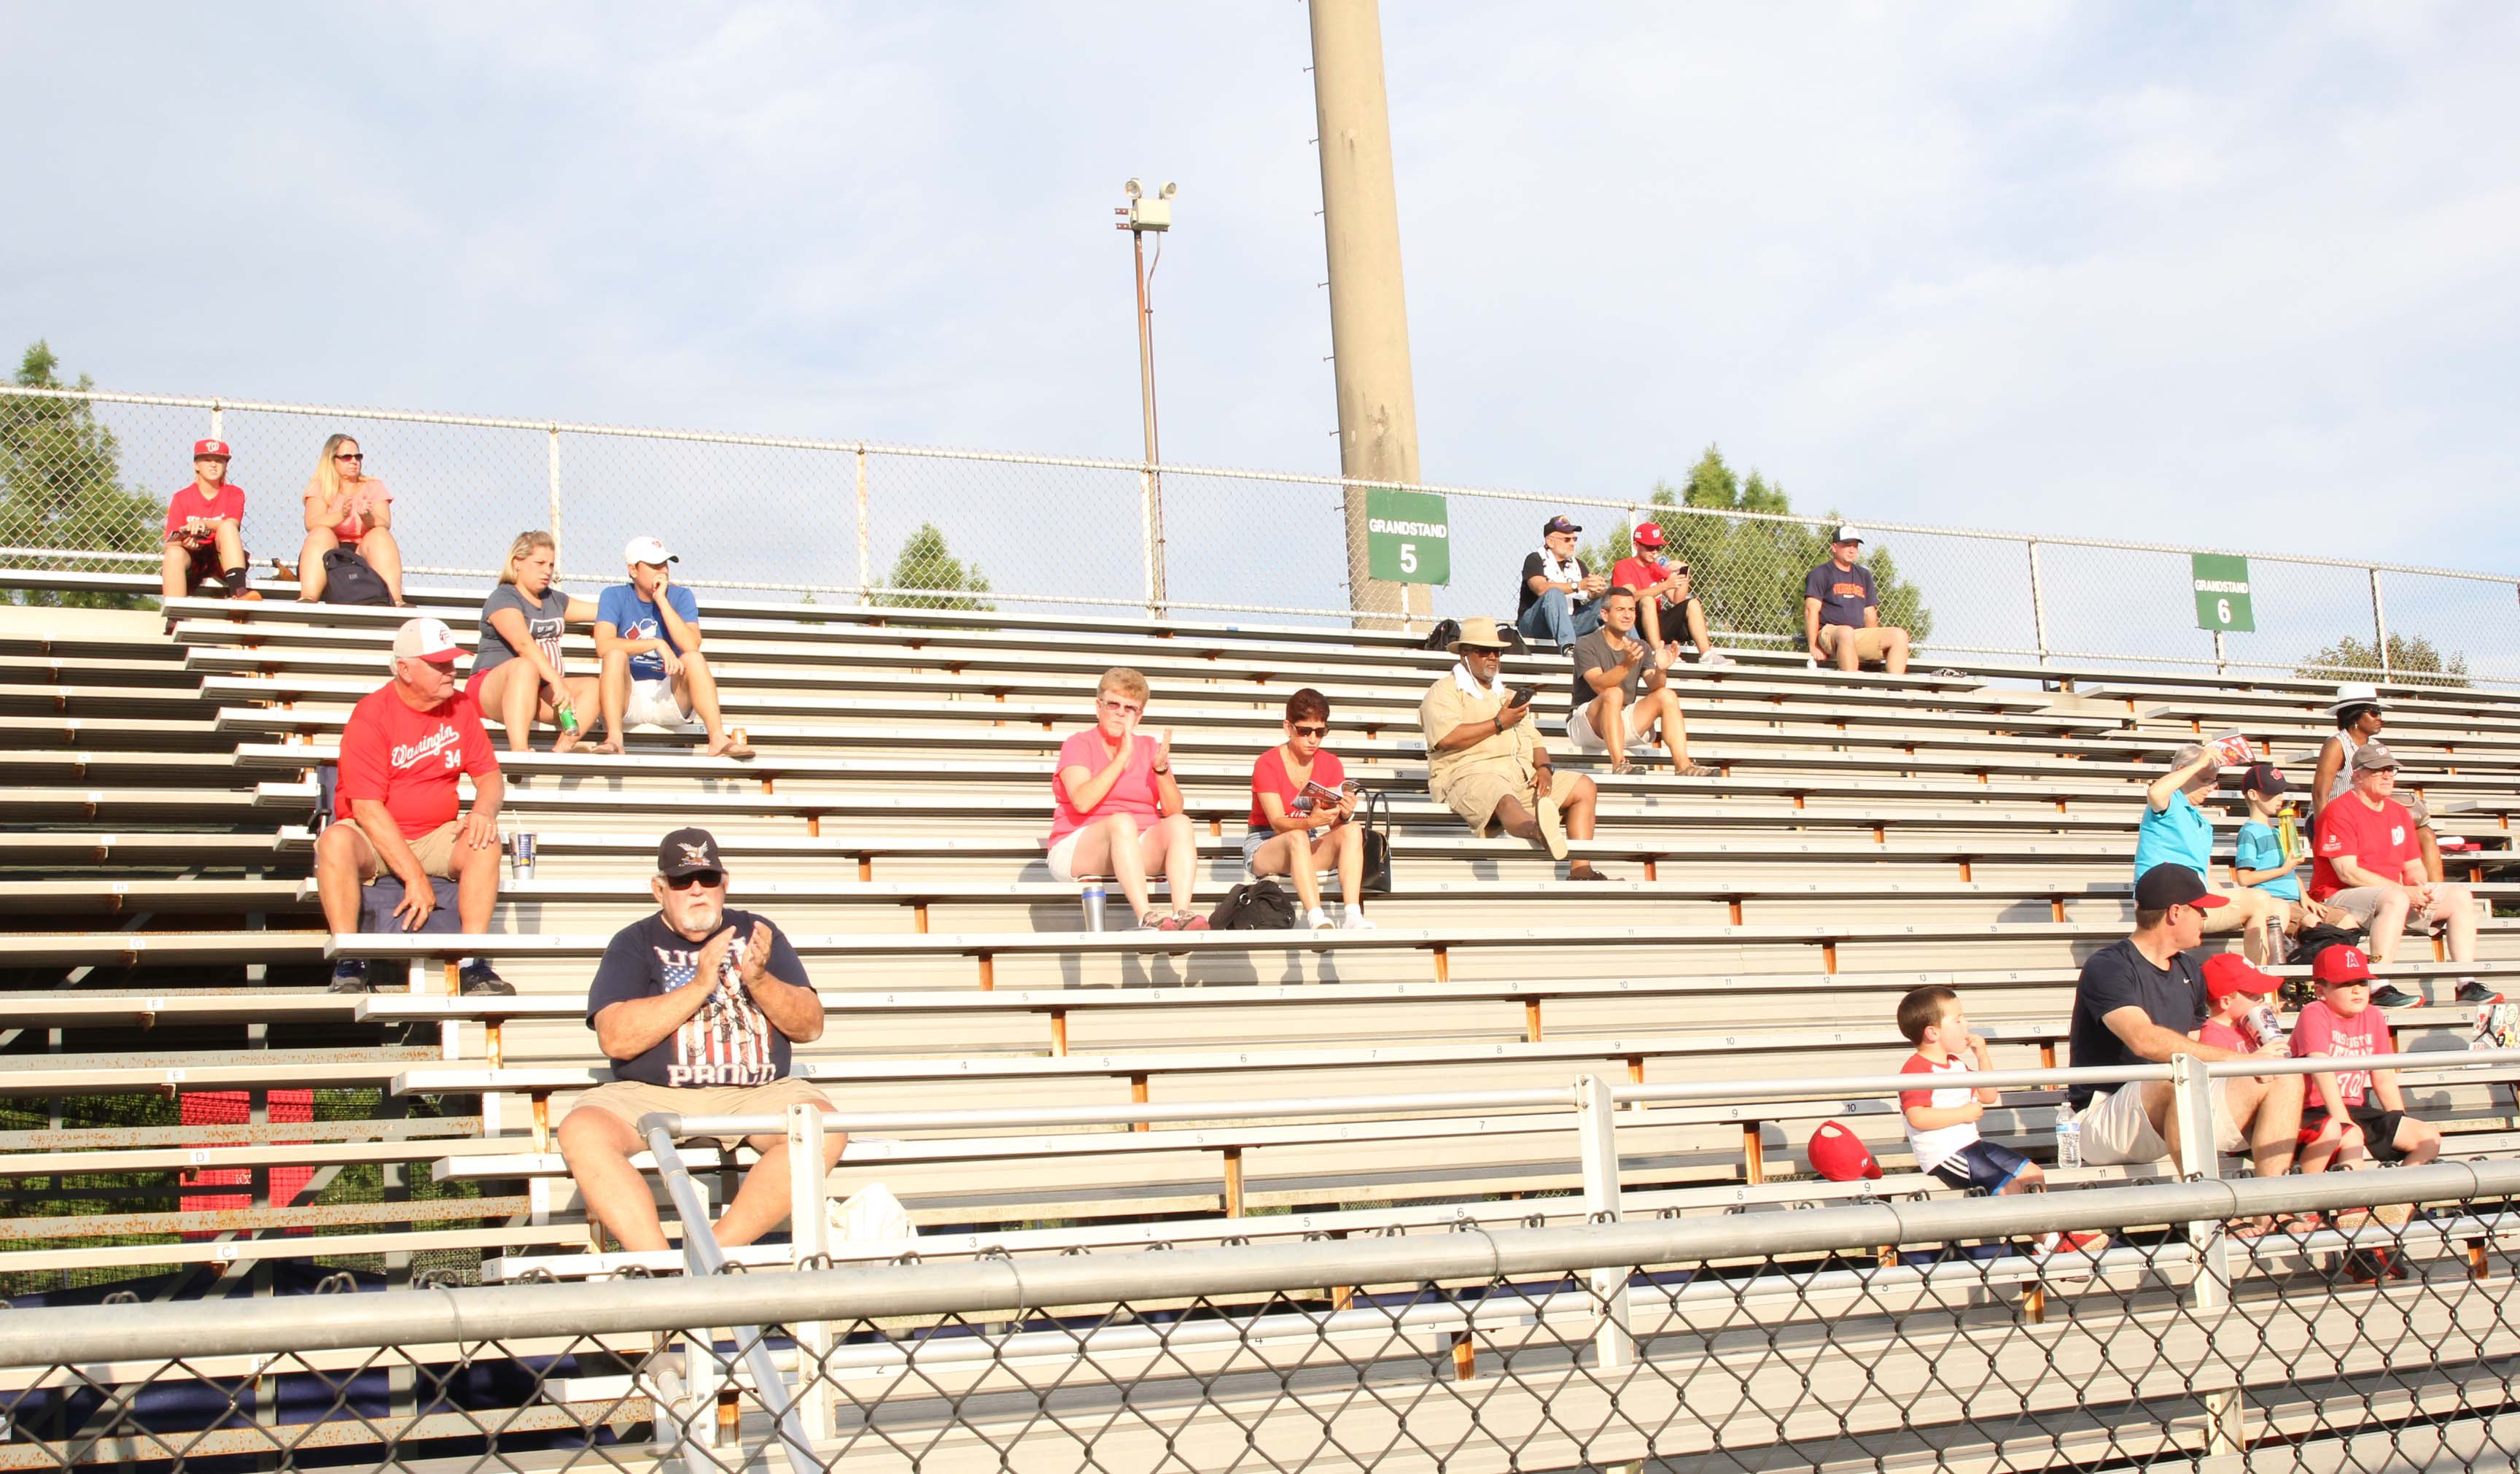 Most of Pfitzner Stadium's seats are bleachers, an outdated trend in ballparks. (MEDILL/Jenna West)